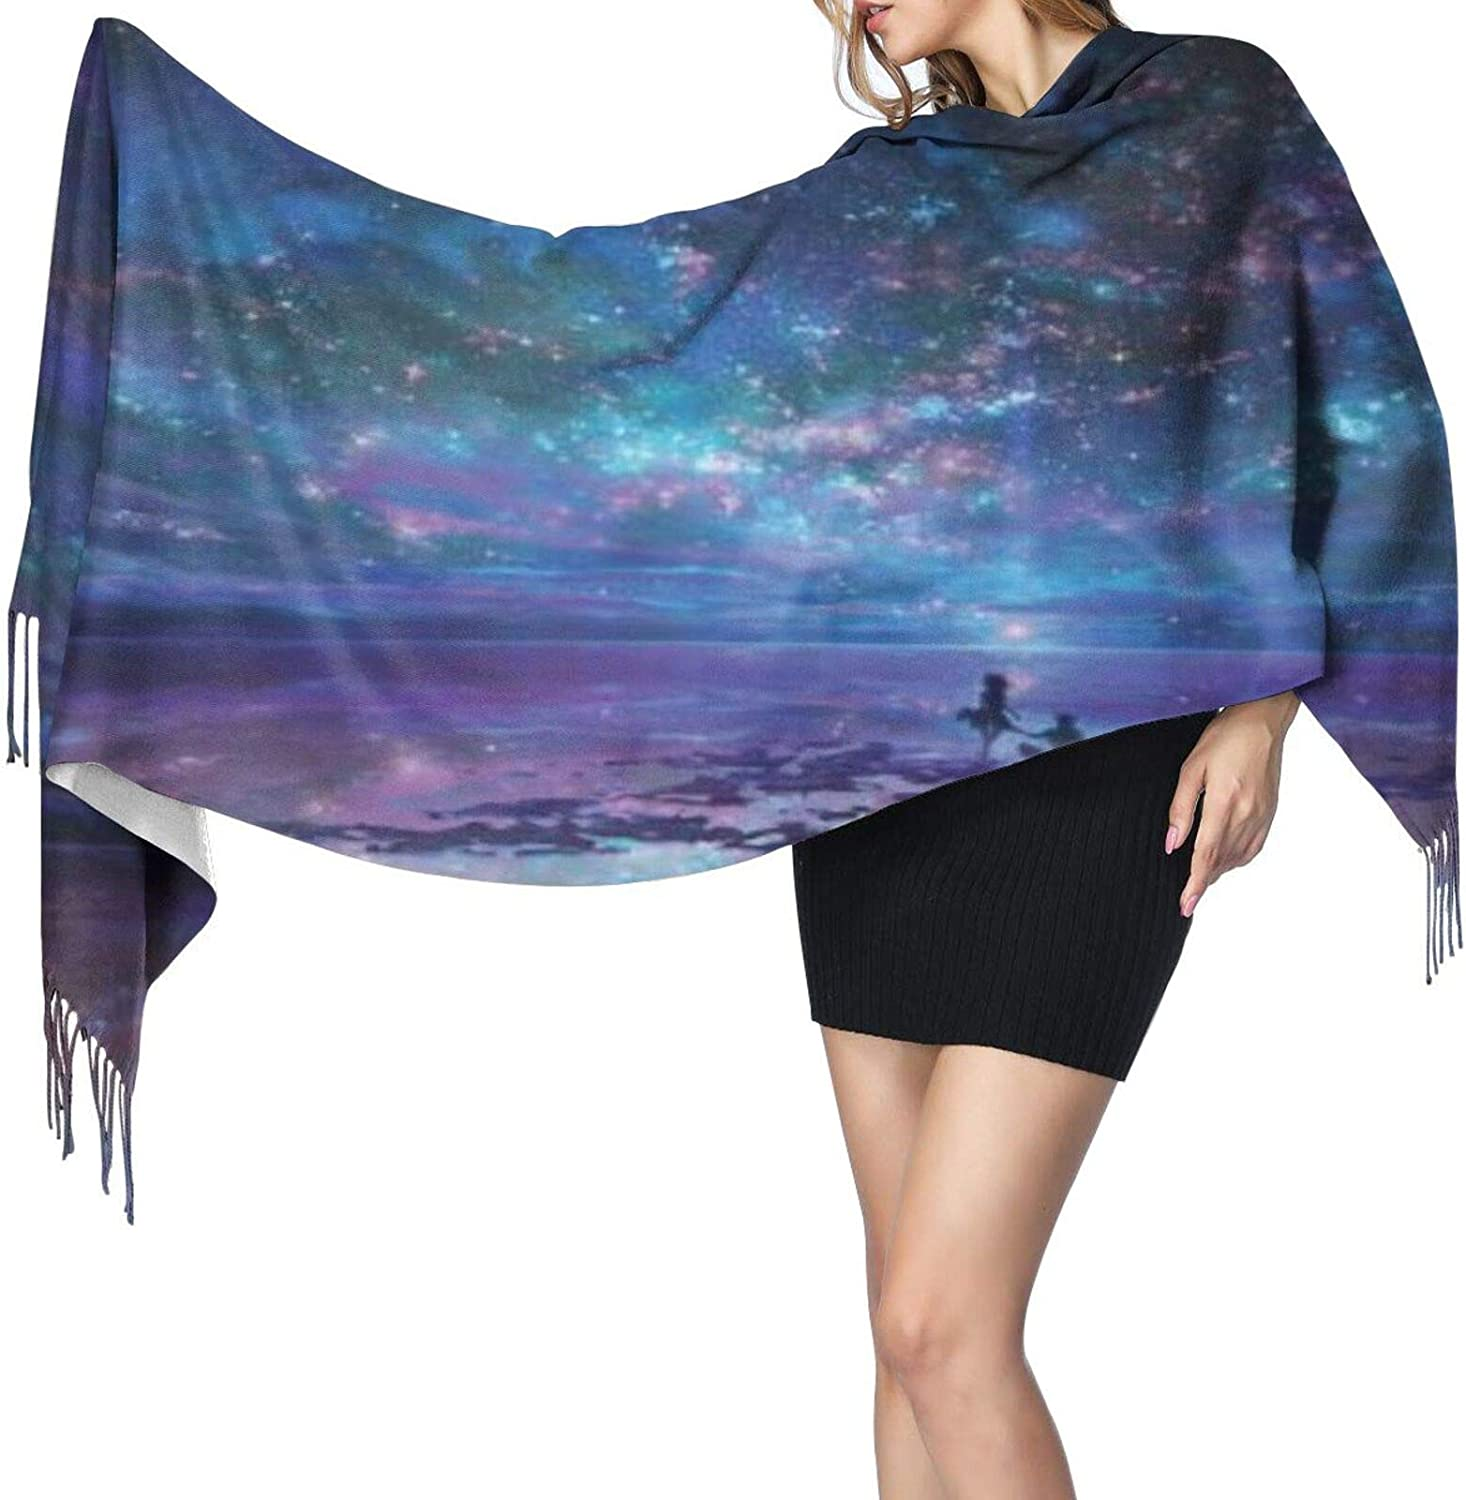 Cashmere fringed scarf Lovers Dream Sky winter extra large scarf